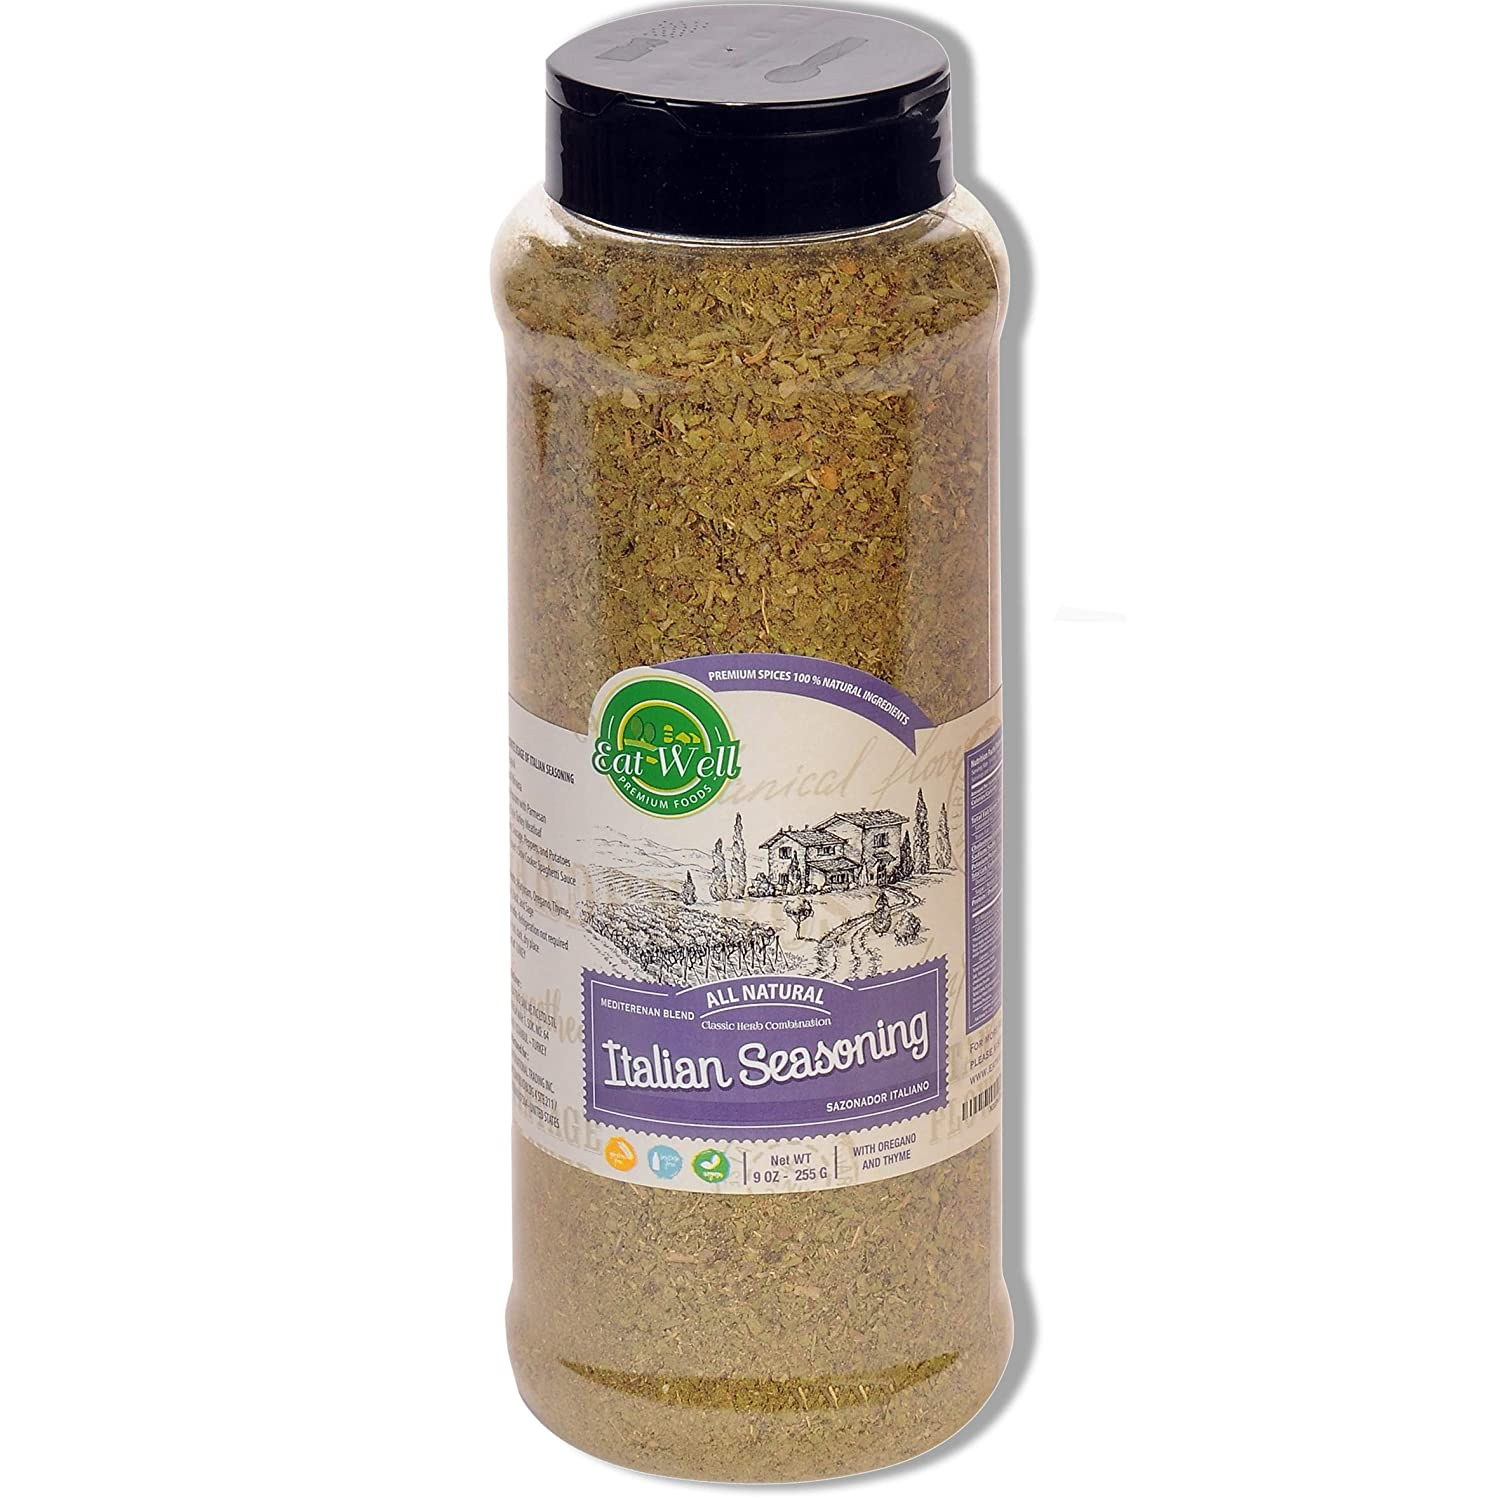 Eat Well Premium Foods - Italian Seasoning, 9 oz - 255g, Authentic taste of Perfectly Blended of Italian-Style Herbs and Spices - Italian Spice (with Mediterranean Crops) Salt Free